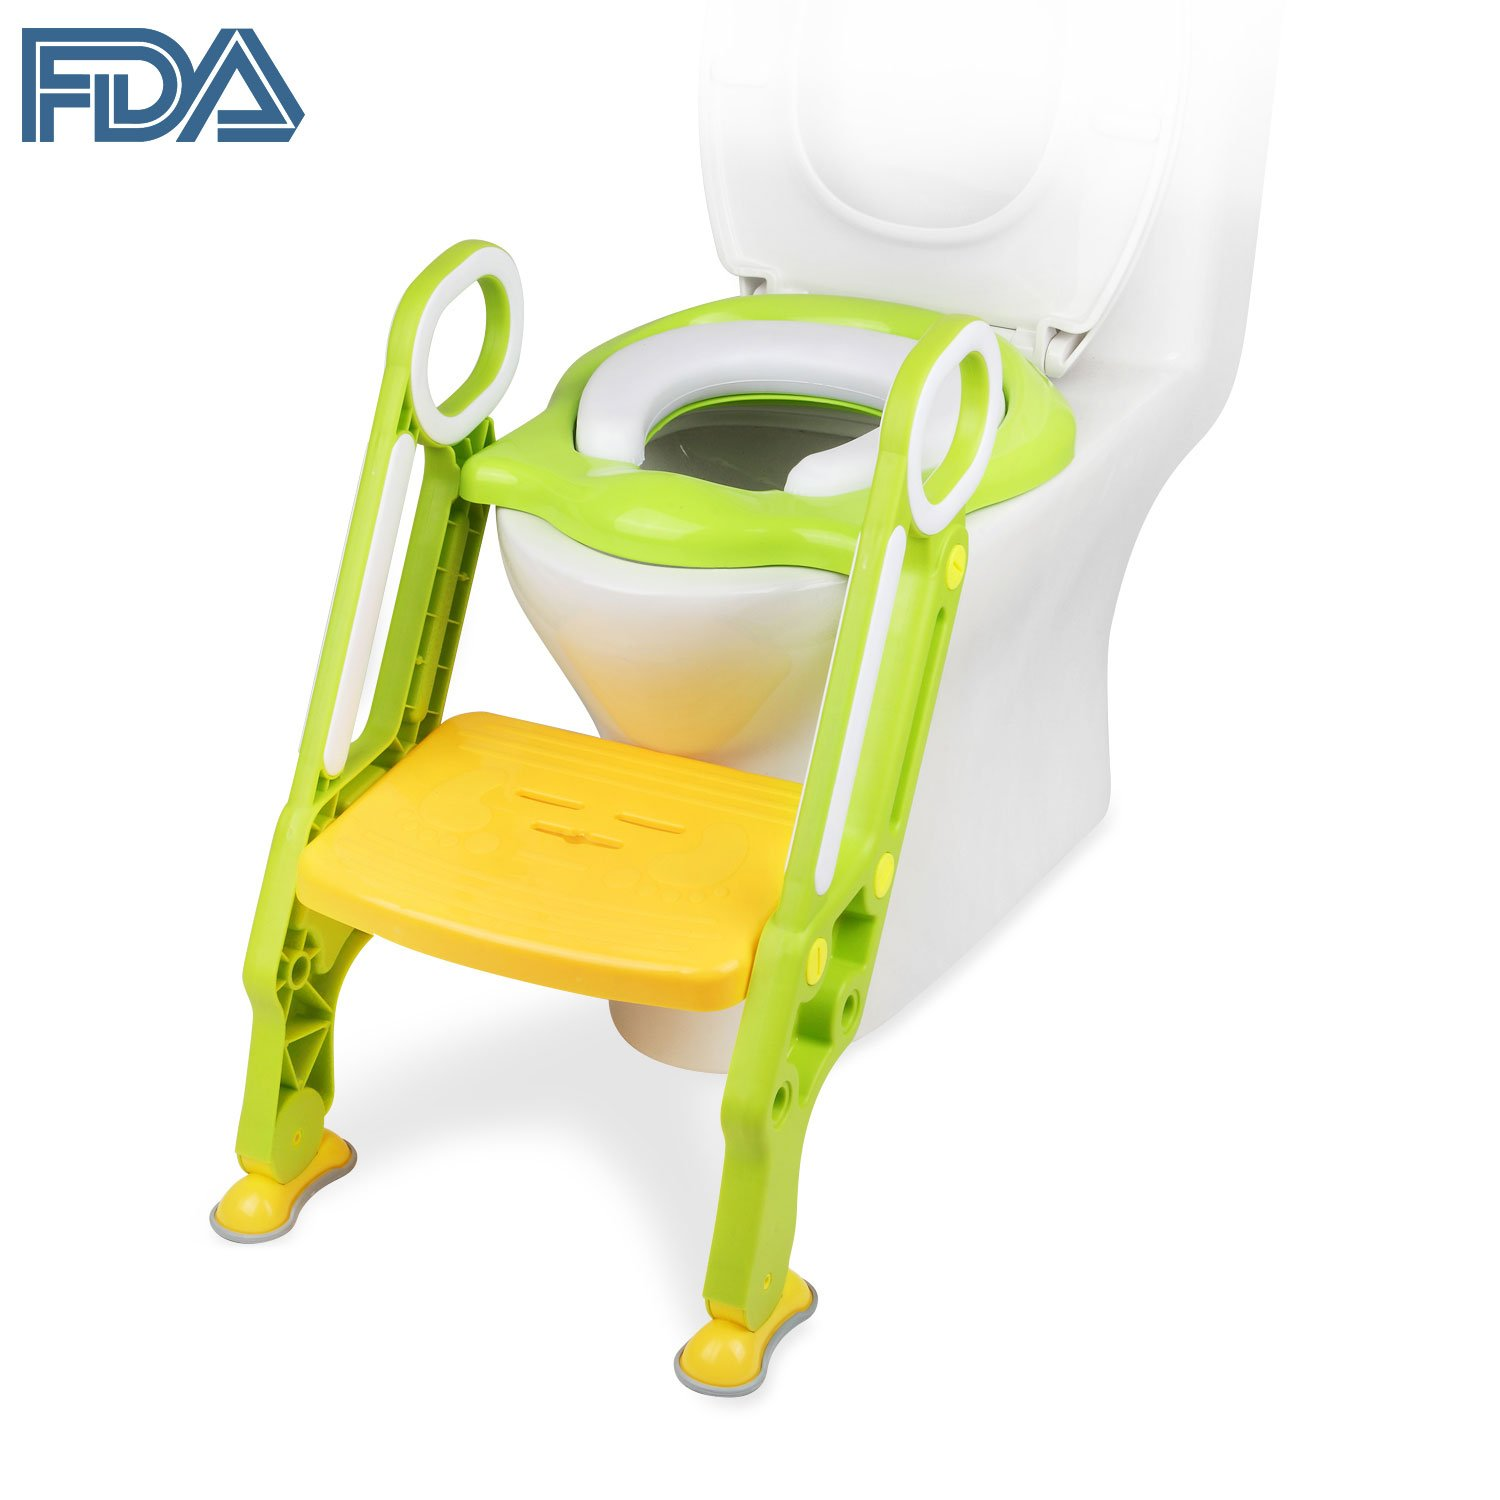 Amazon.com : [FDA Certified] Ostrich Toilet Step Trainer Ladder for ...